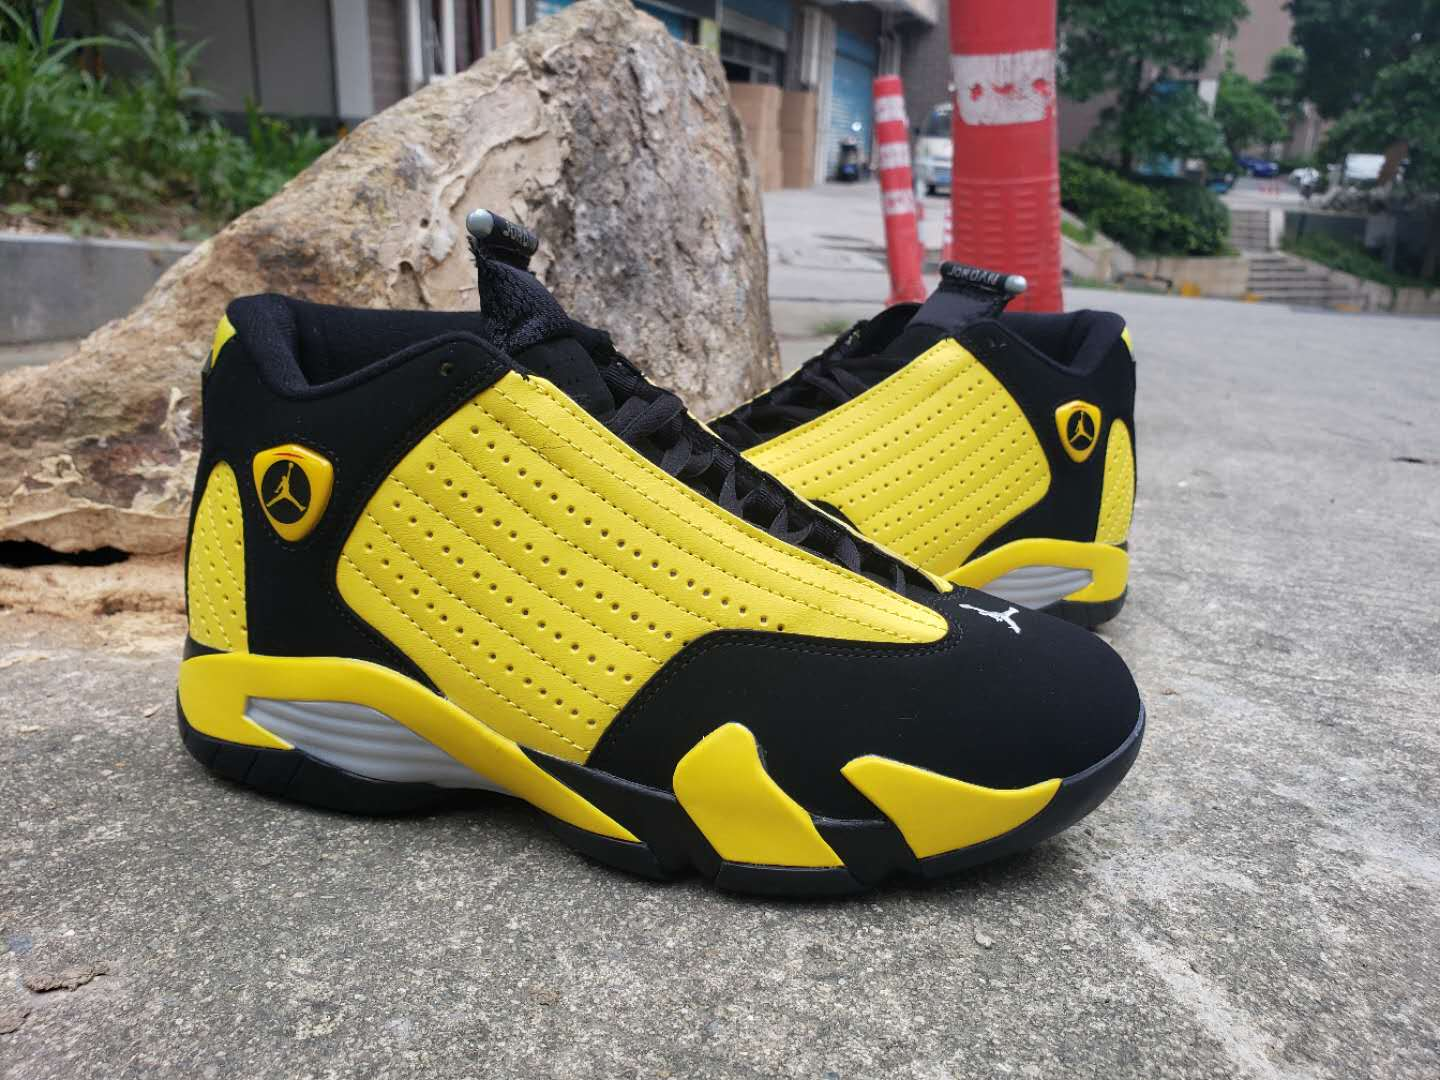 2019 Air Jordan 14 Bumblebee Yellow Black Shoes